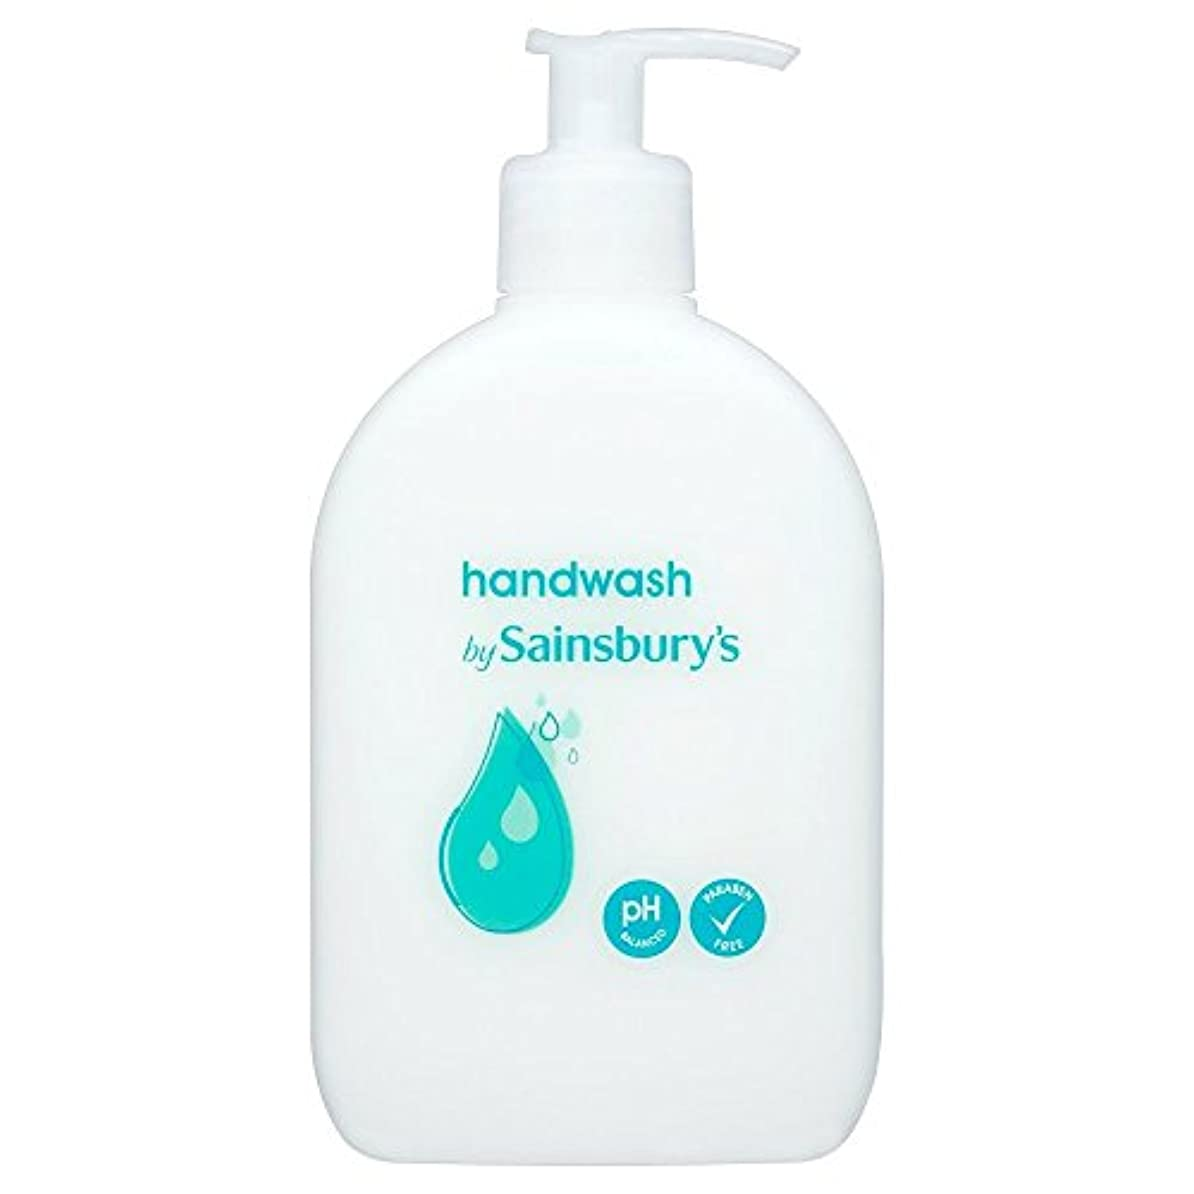 Sainsbury's Handwash, White 500ml (Pack of 4) - (Sainsbury's) 手洗い、白500ミリリットル (x4) [並行輸入品]